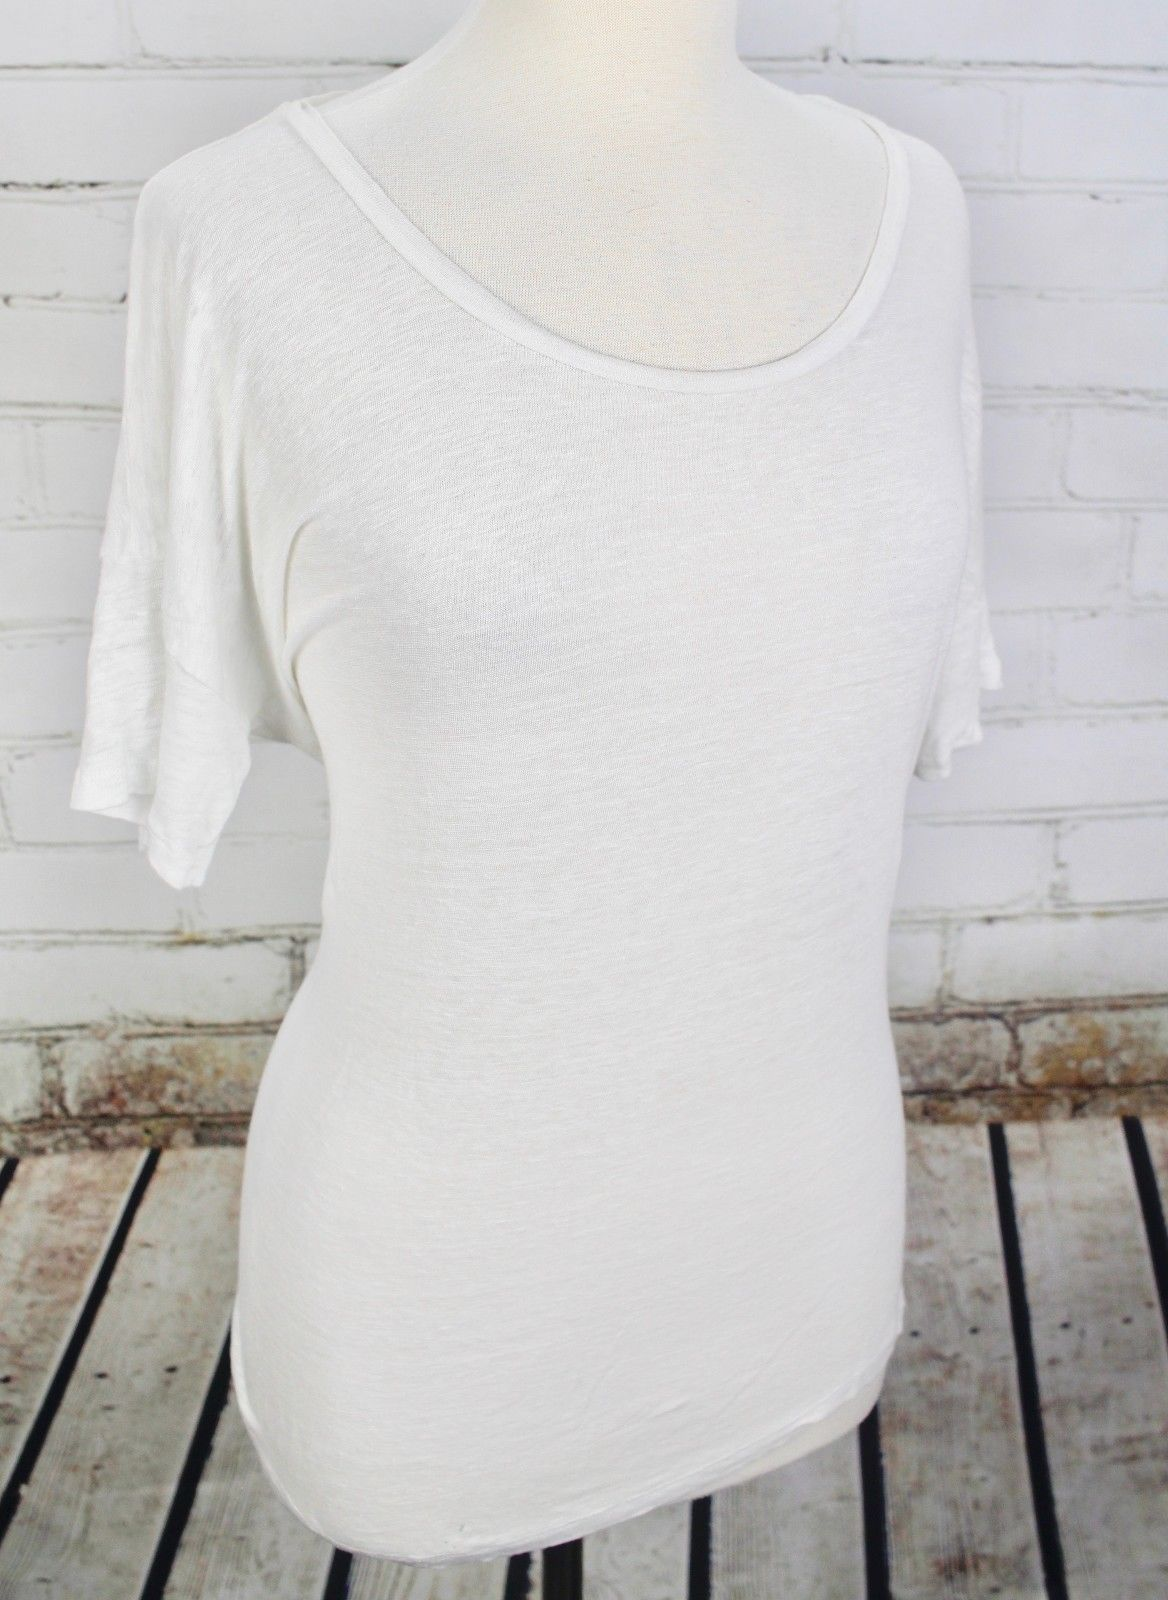 J Crew Boyfriend T-Shirt 100% Linen Tee Women's M White Short Sleeve Top Dolman